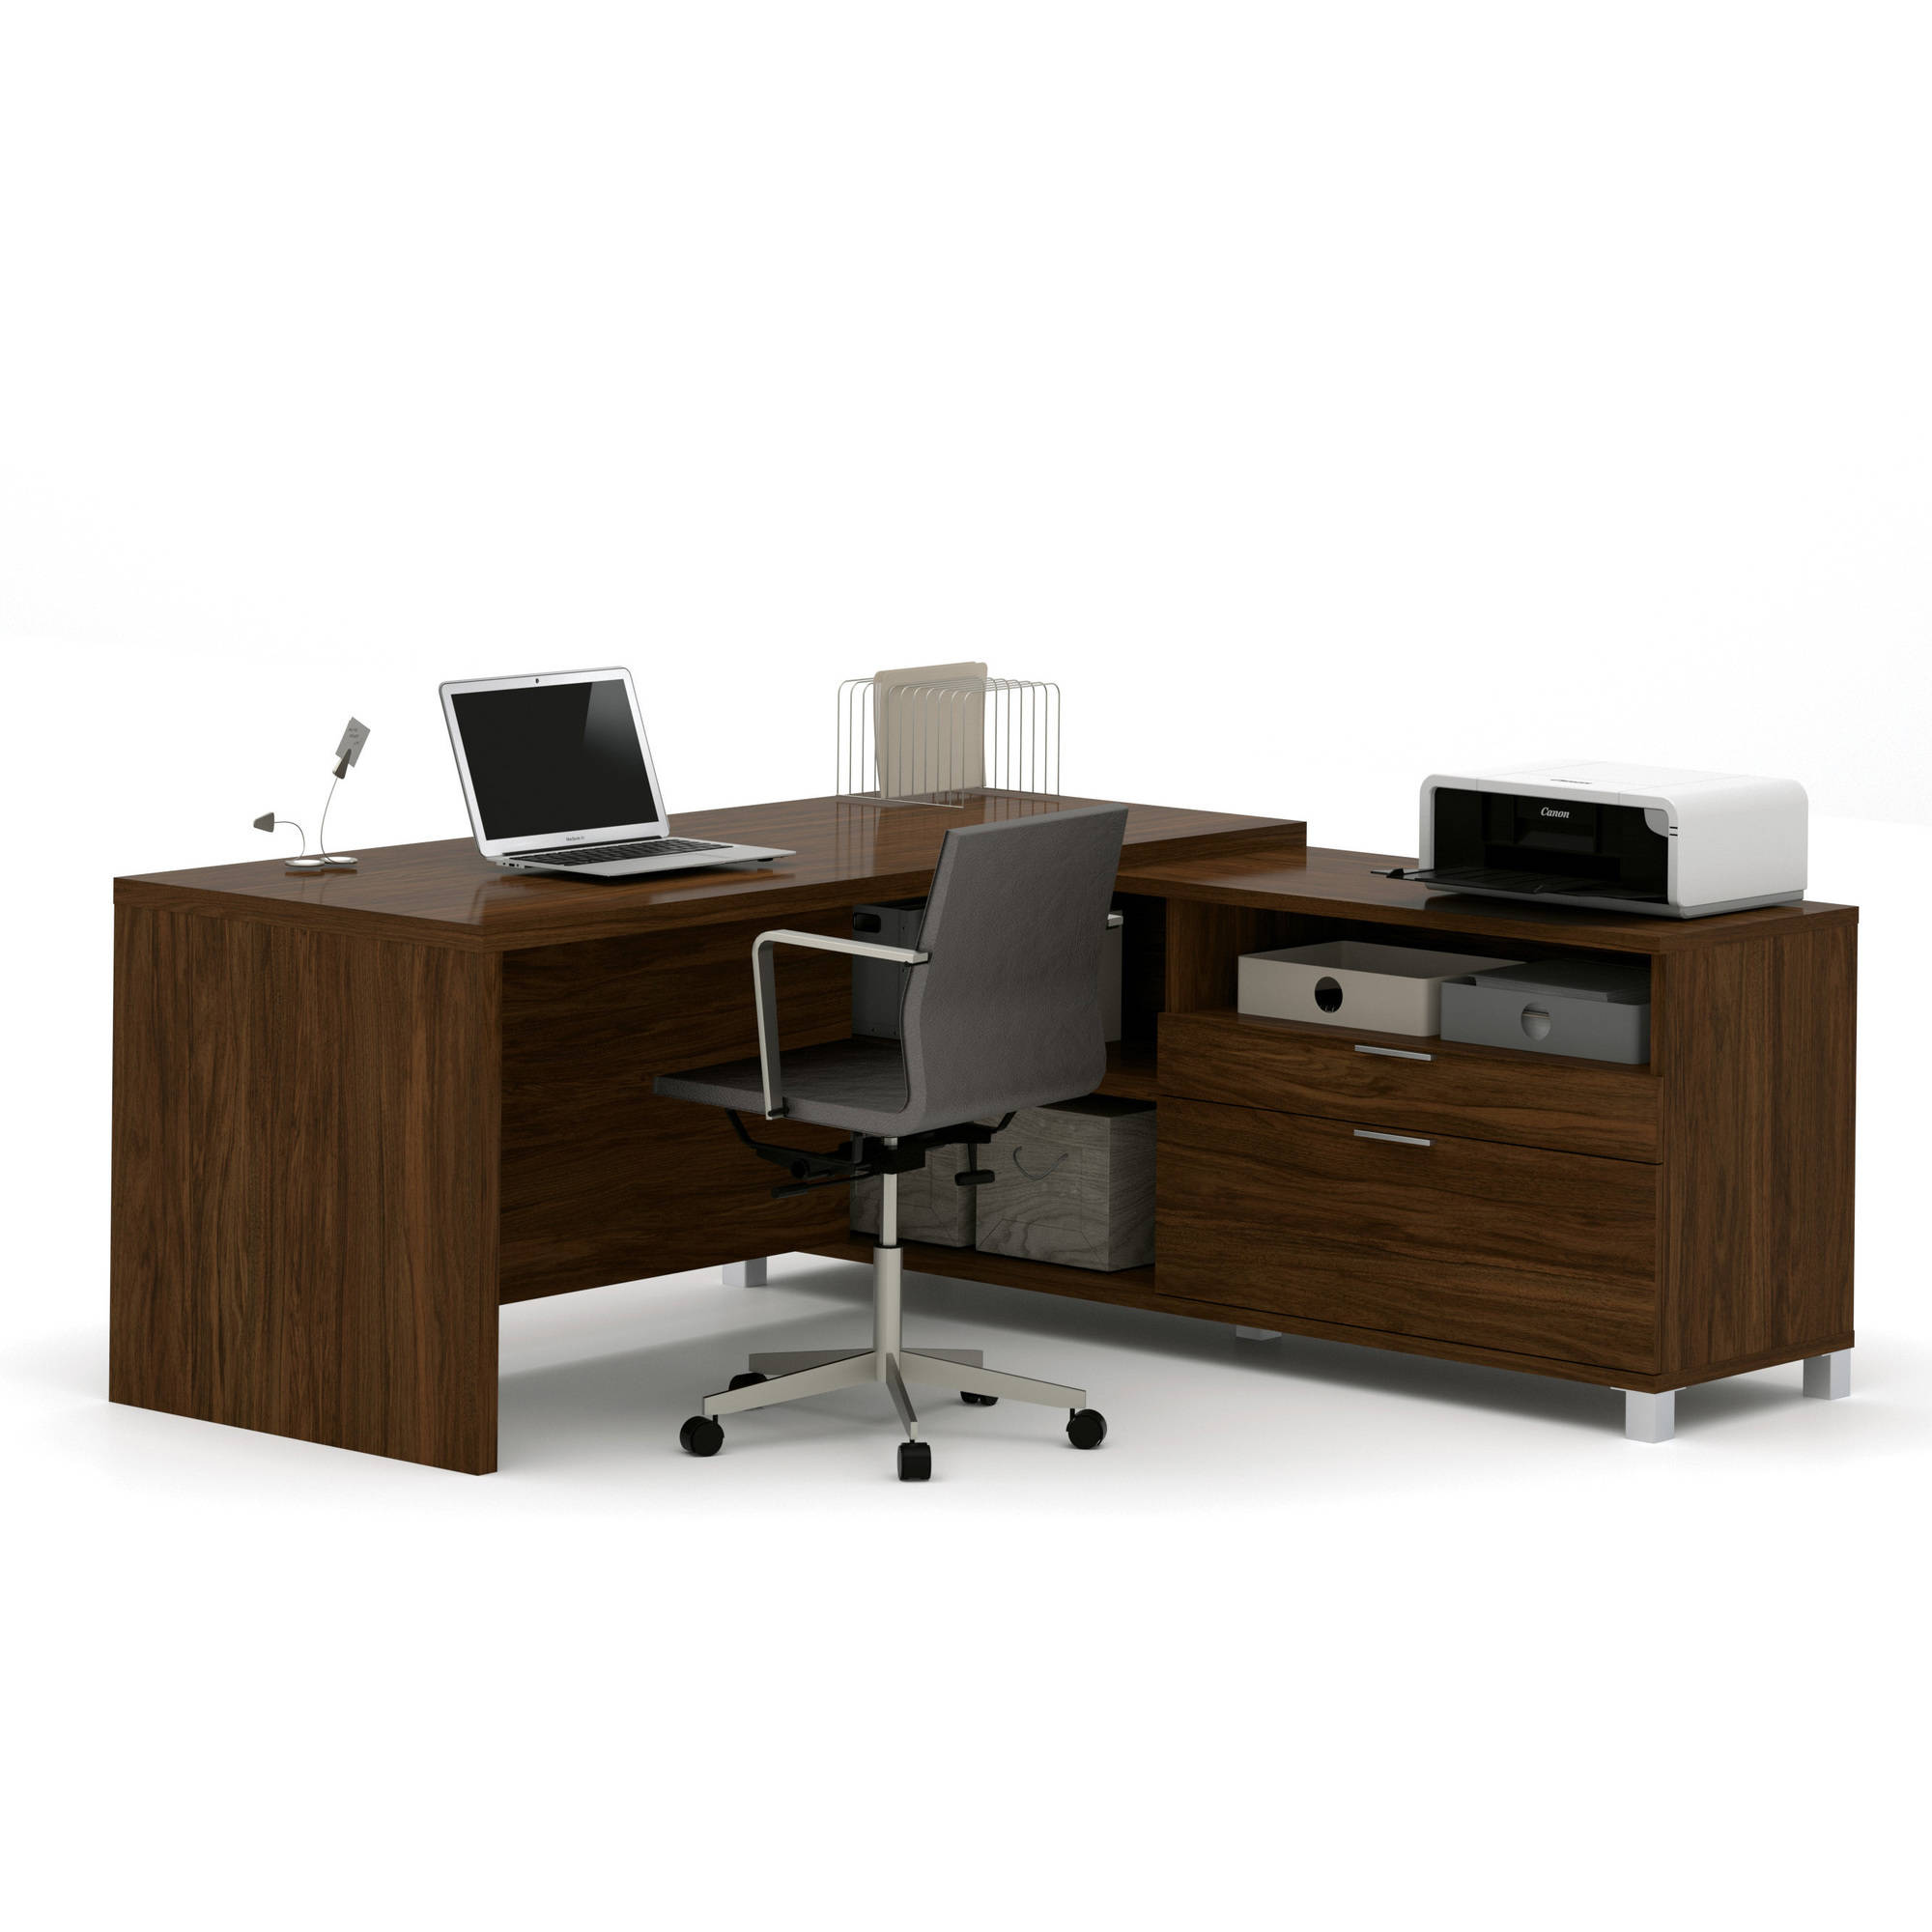 Bestar Pro-Linea L-Desk, Oak Barrel